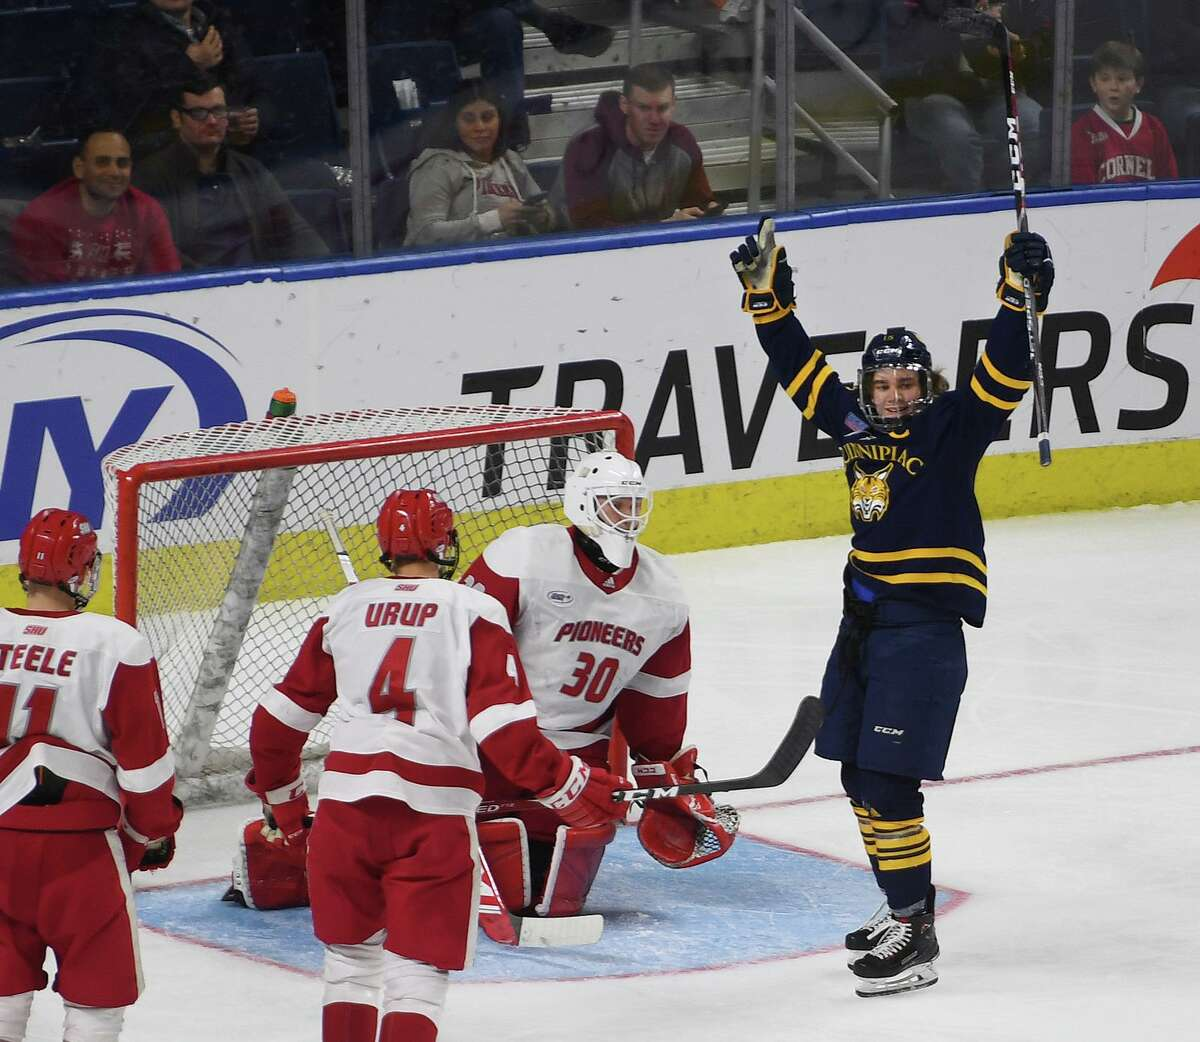 Quinnipiac captain Nick Jermain celebrates a goal by teammate Karlis Cukste in the first period of the championship game with Sacred Heart at the Connecticut Ice college hockey tournament at the Webster Bank Arena in Bridgeport, Conn. on Sunday January 26, 2020.